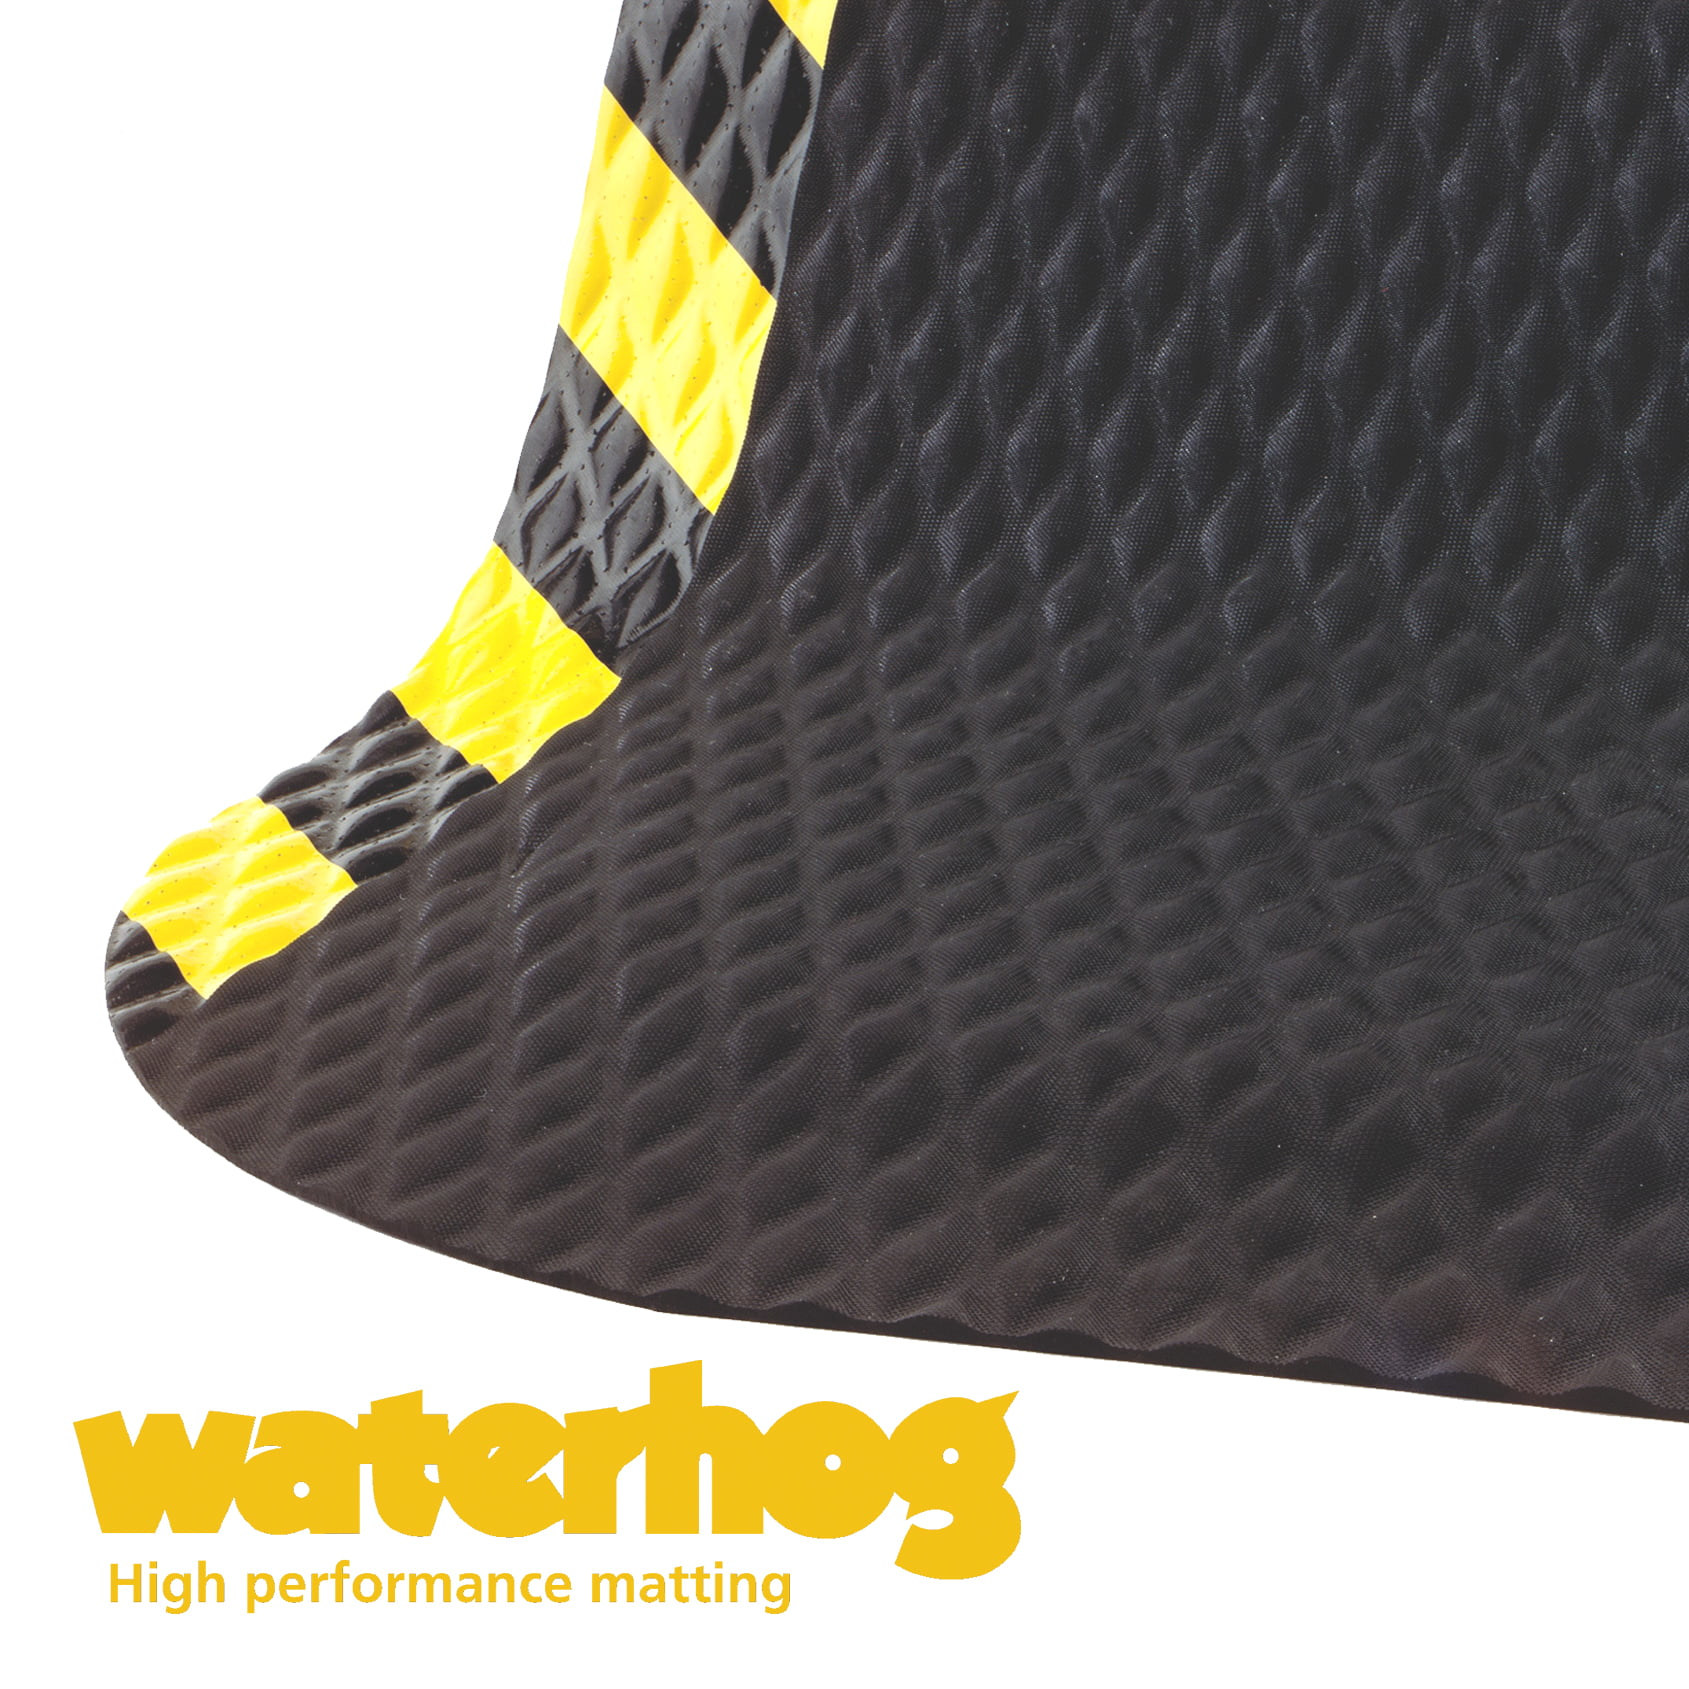 mat best mats buying guide do standing work extreme how reviews top anti fatigue